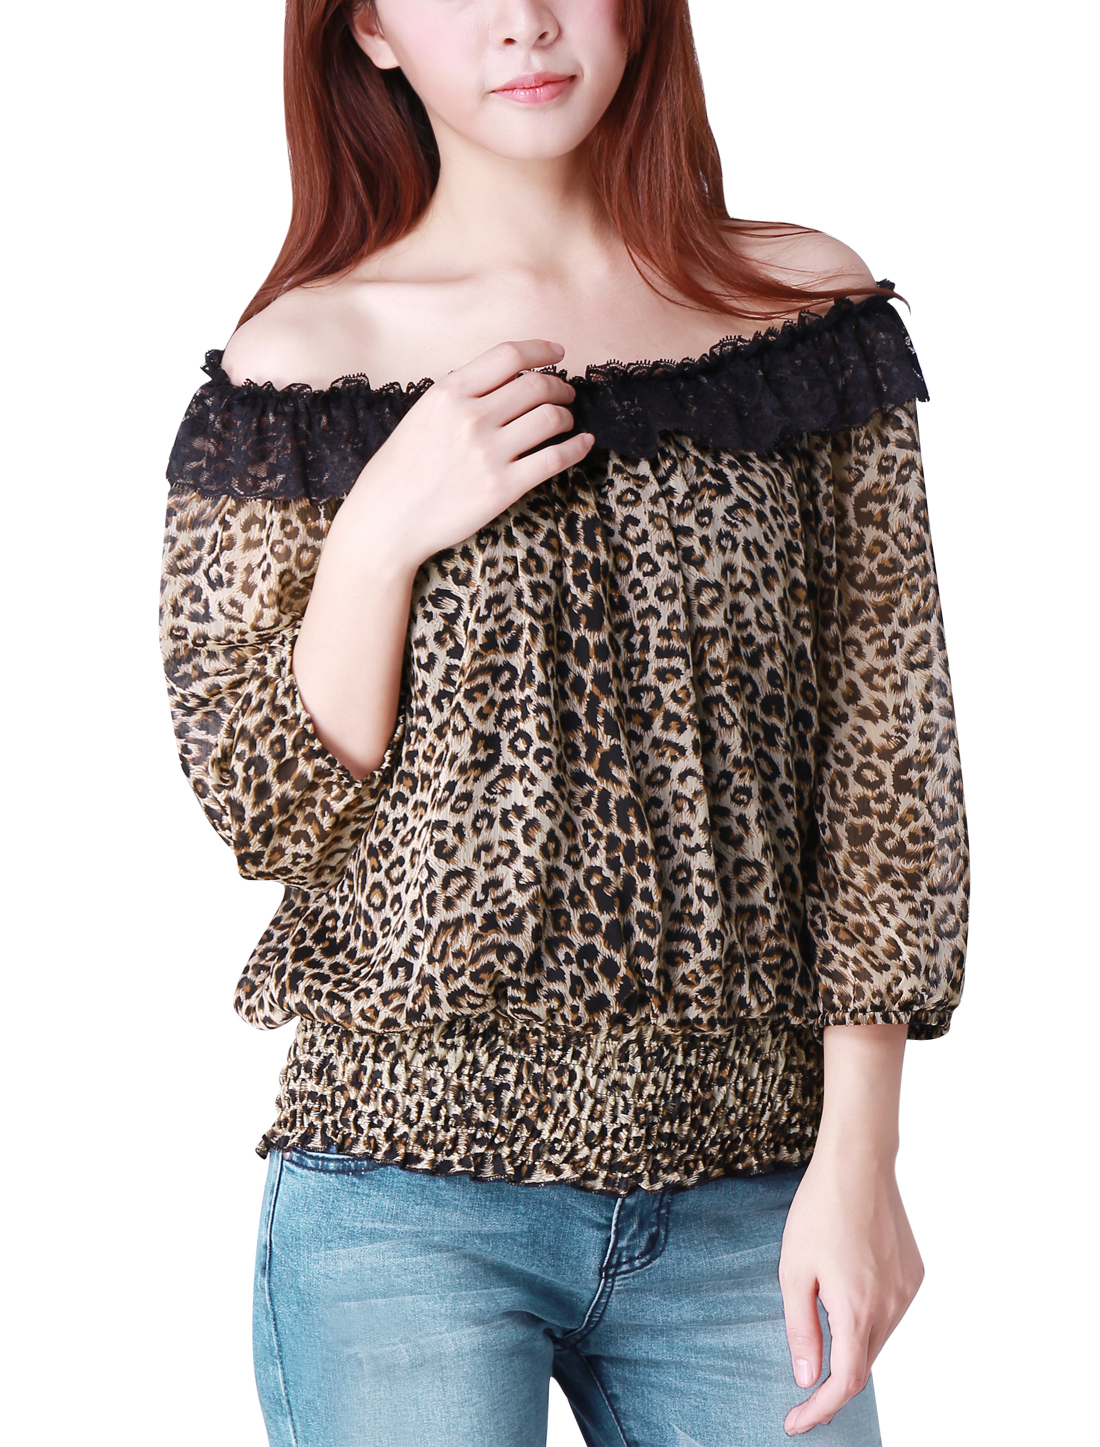 Lady Beige Off Shoulder Lace Neckline Leopard Prints Chiffon Top Blouse L